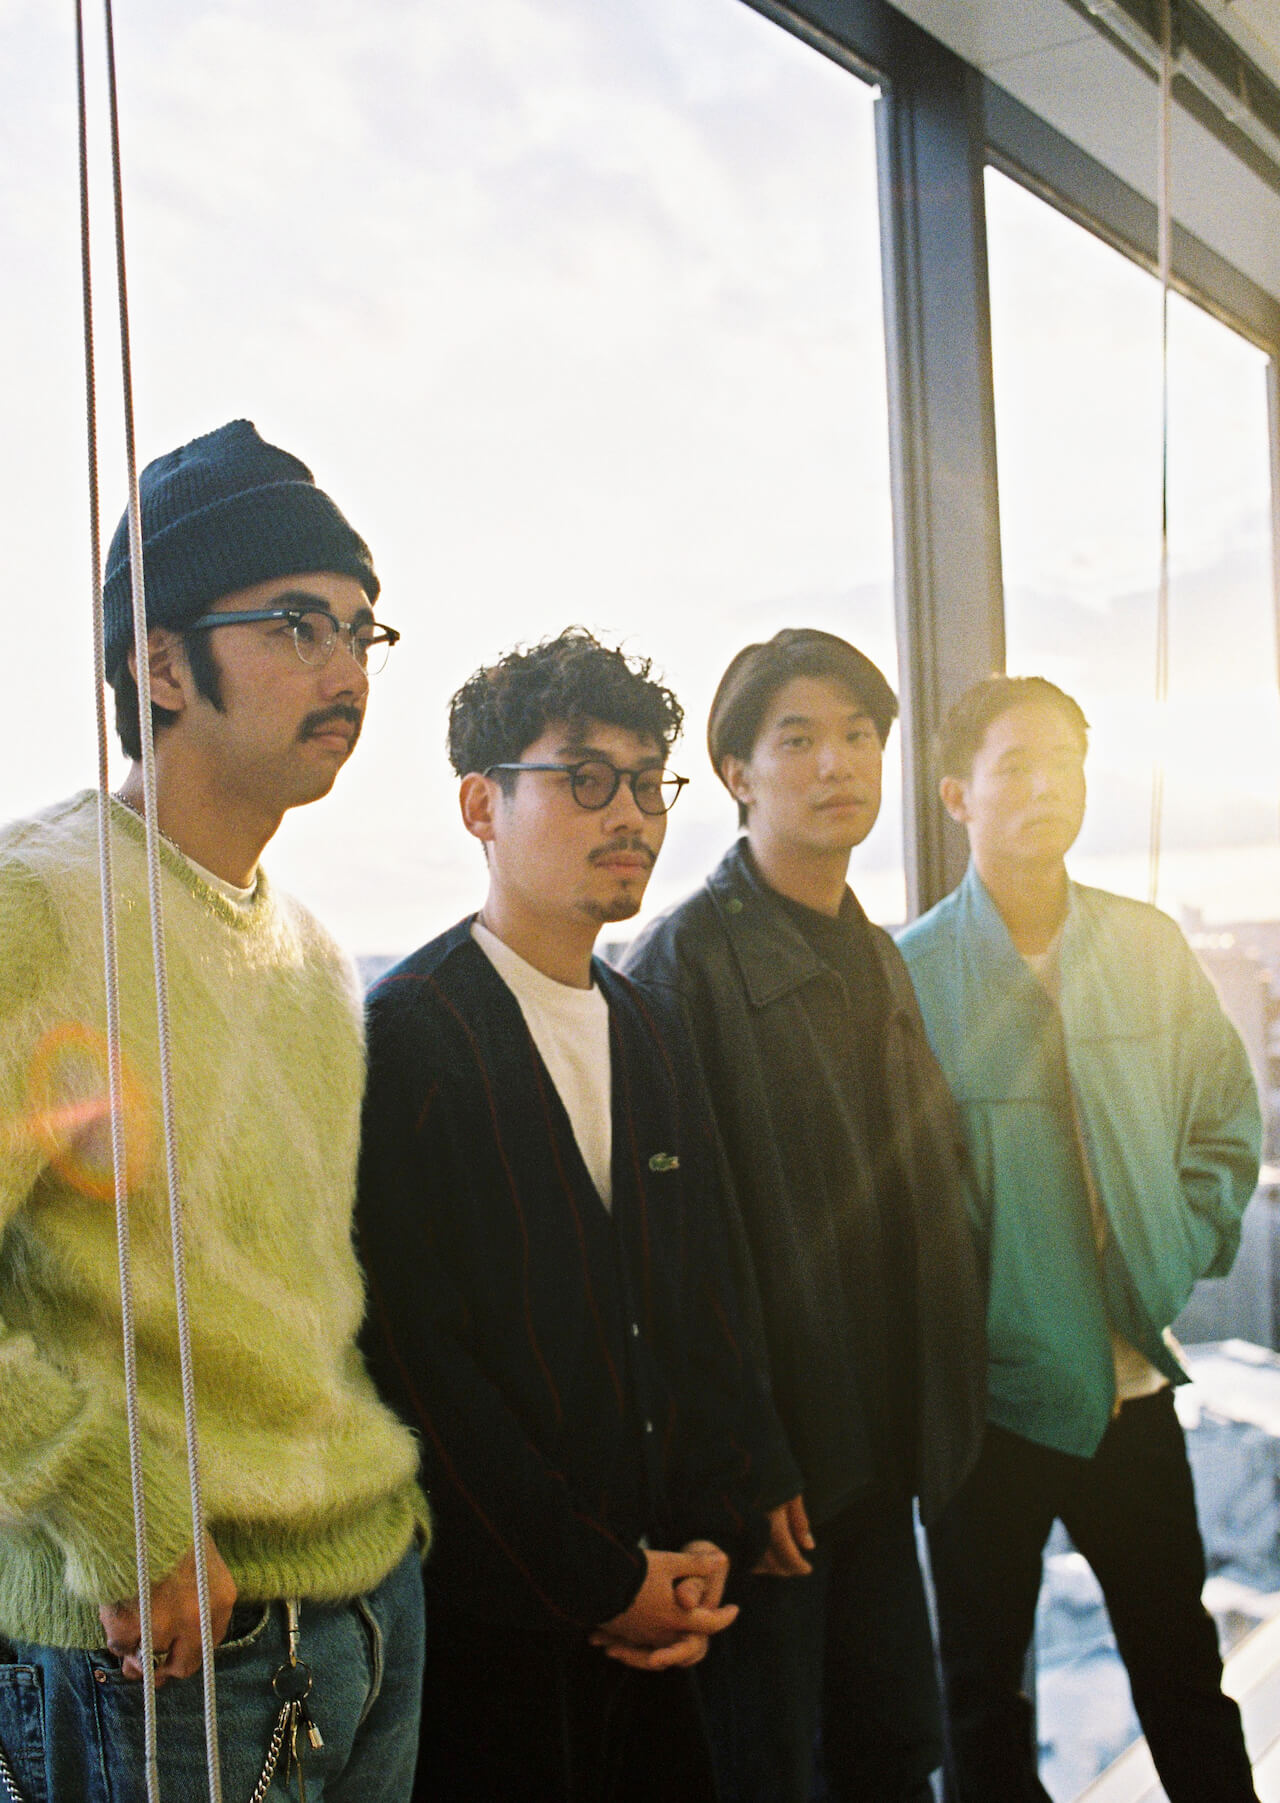 Yogee New Wavesが『to the MOON e.p.』に込めた想いと国境を超えた先にあるもの interview-yogee-41-1